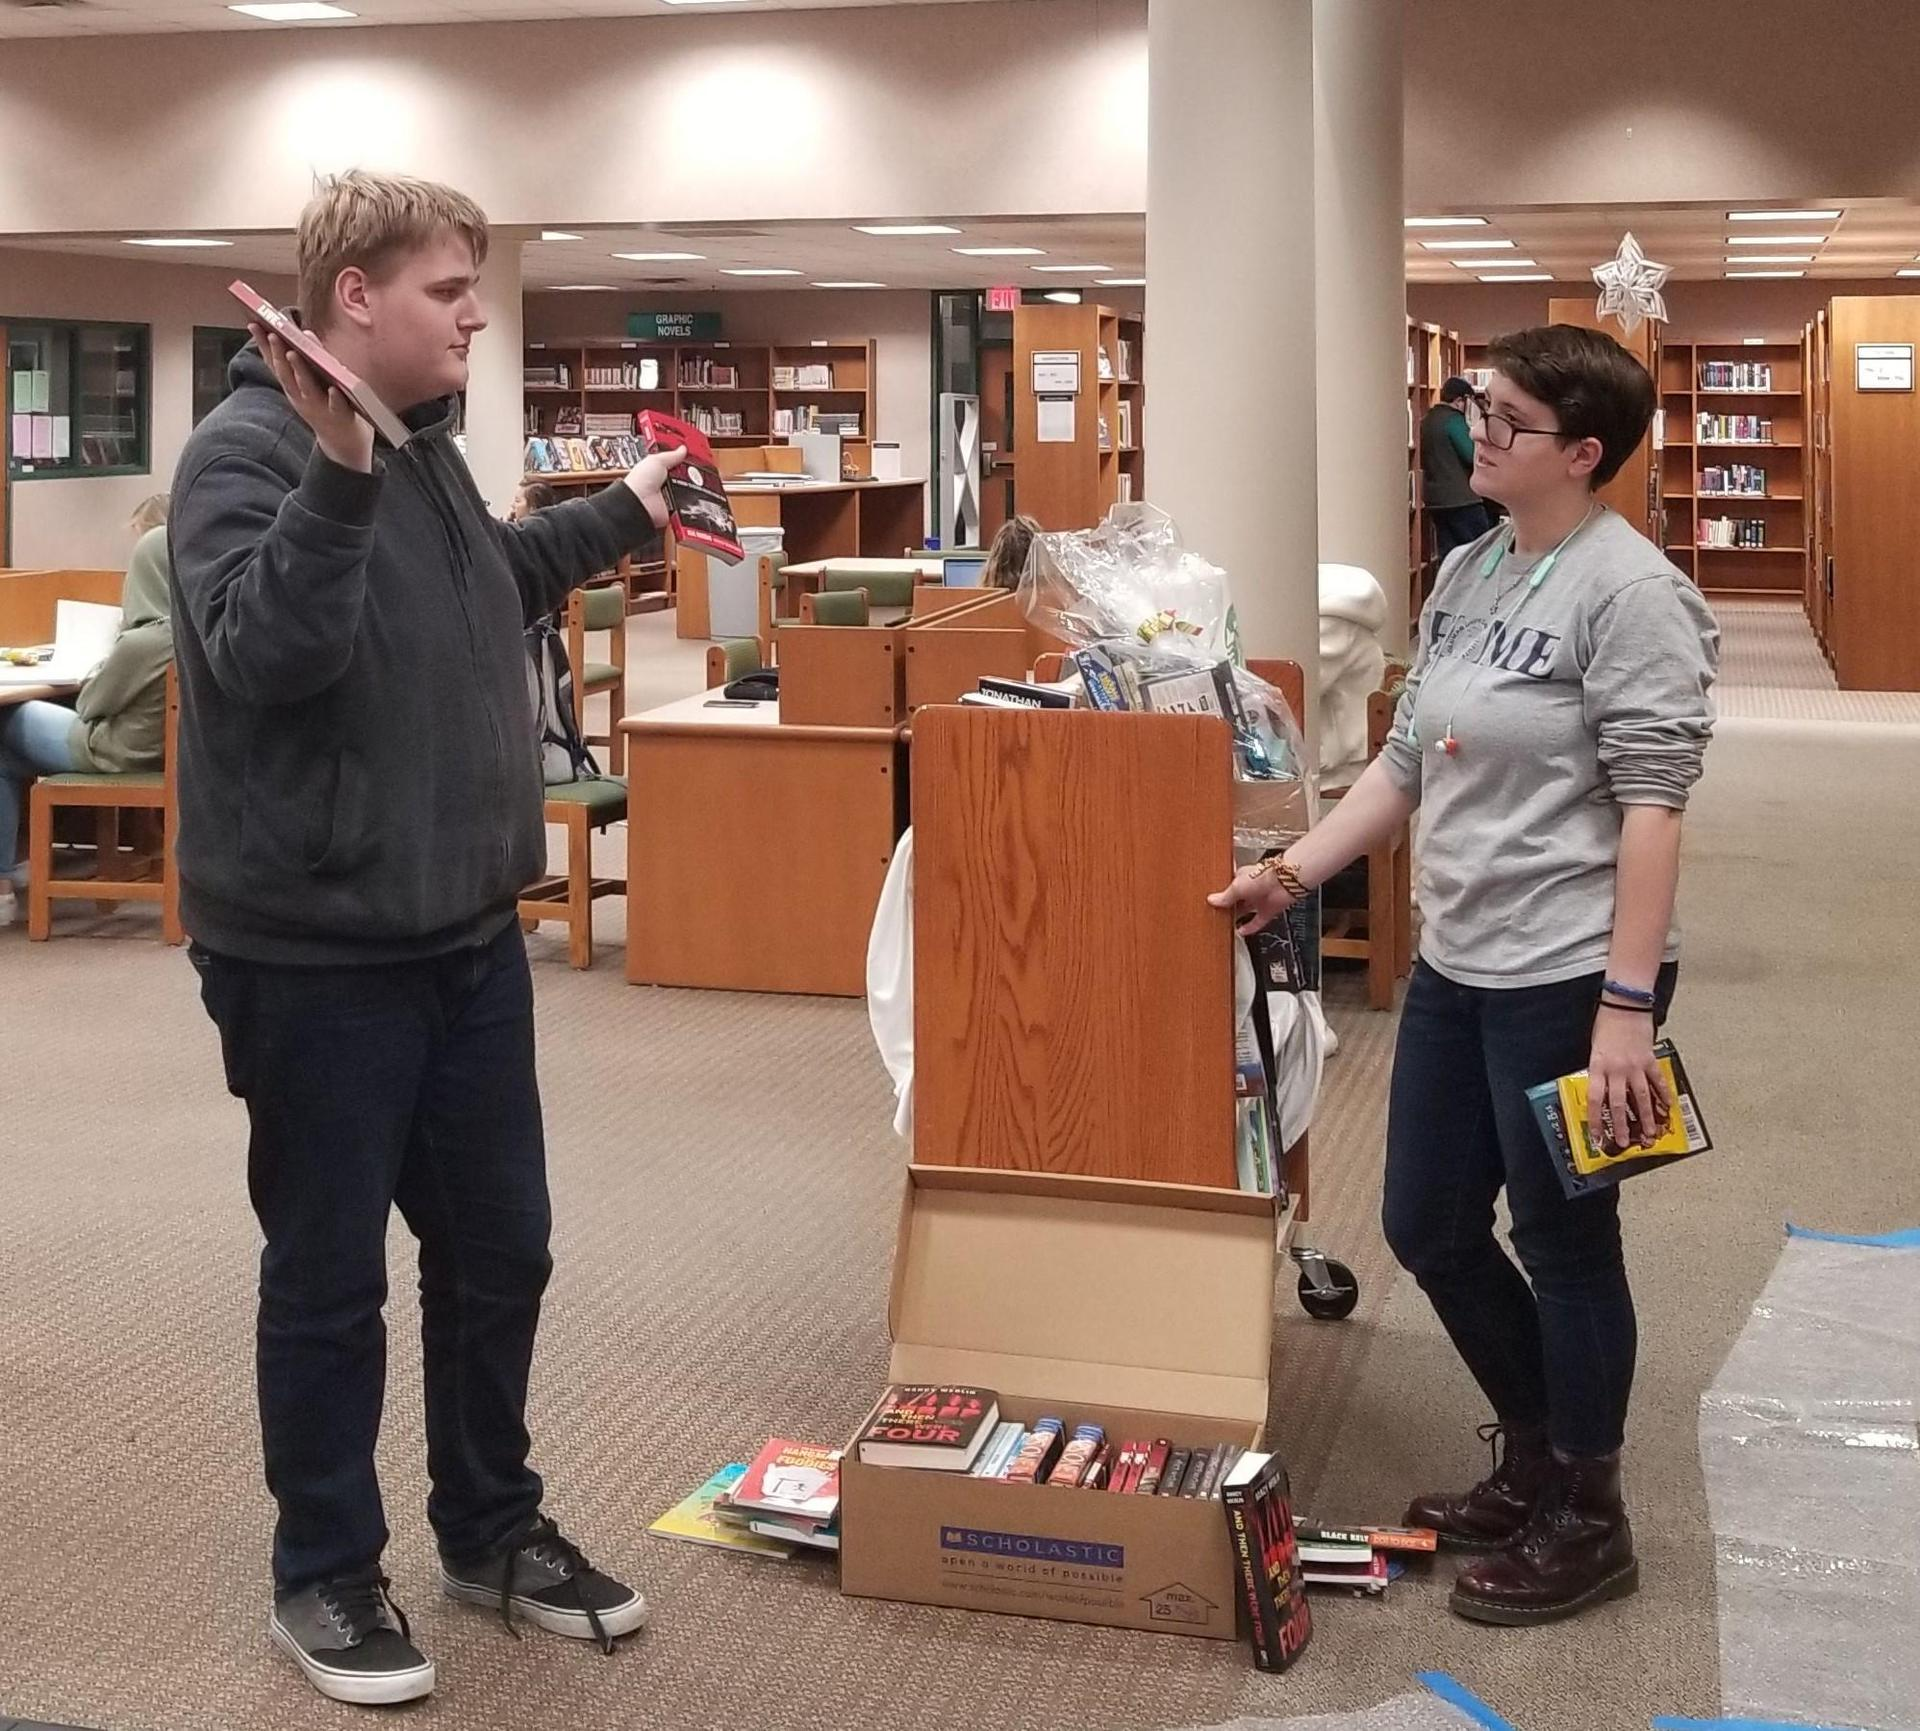 A male student holds up two books while talking to a female student who is holding one book